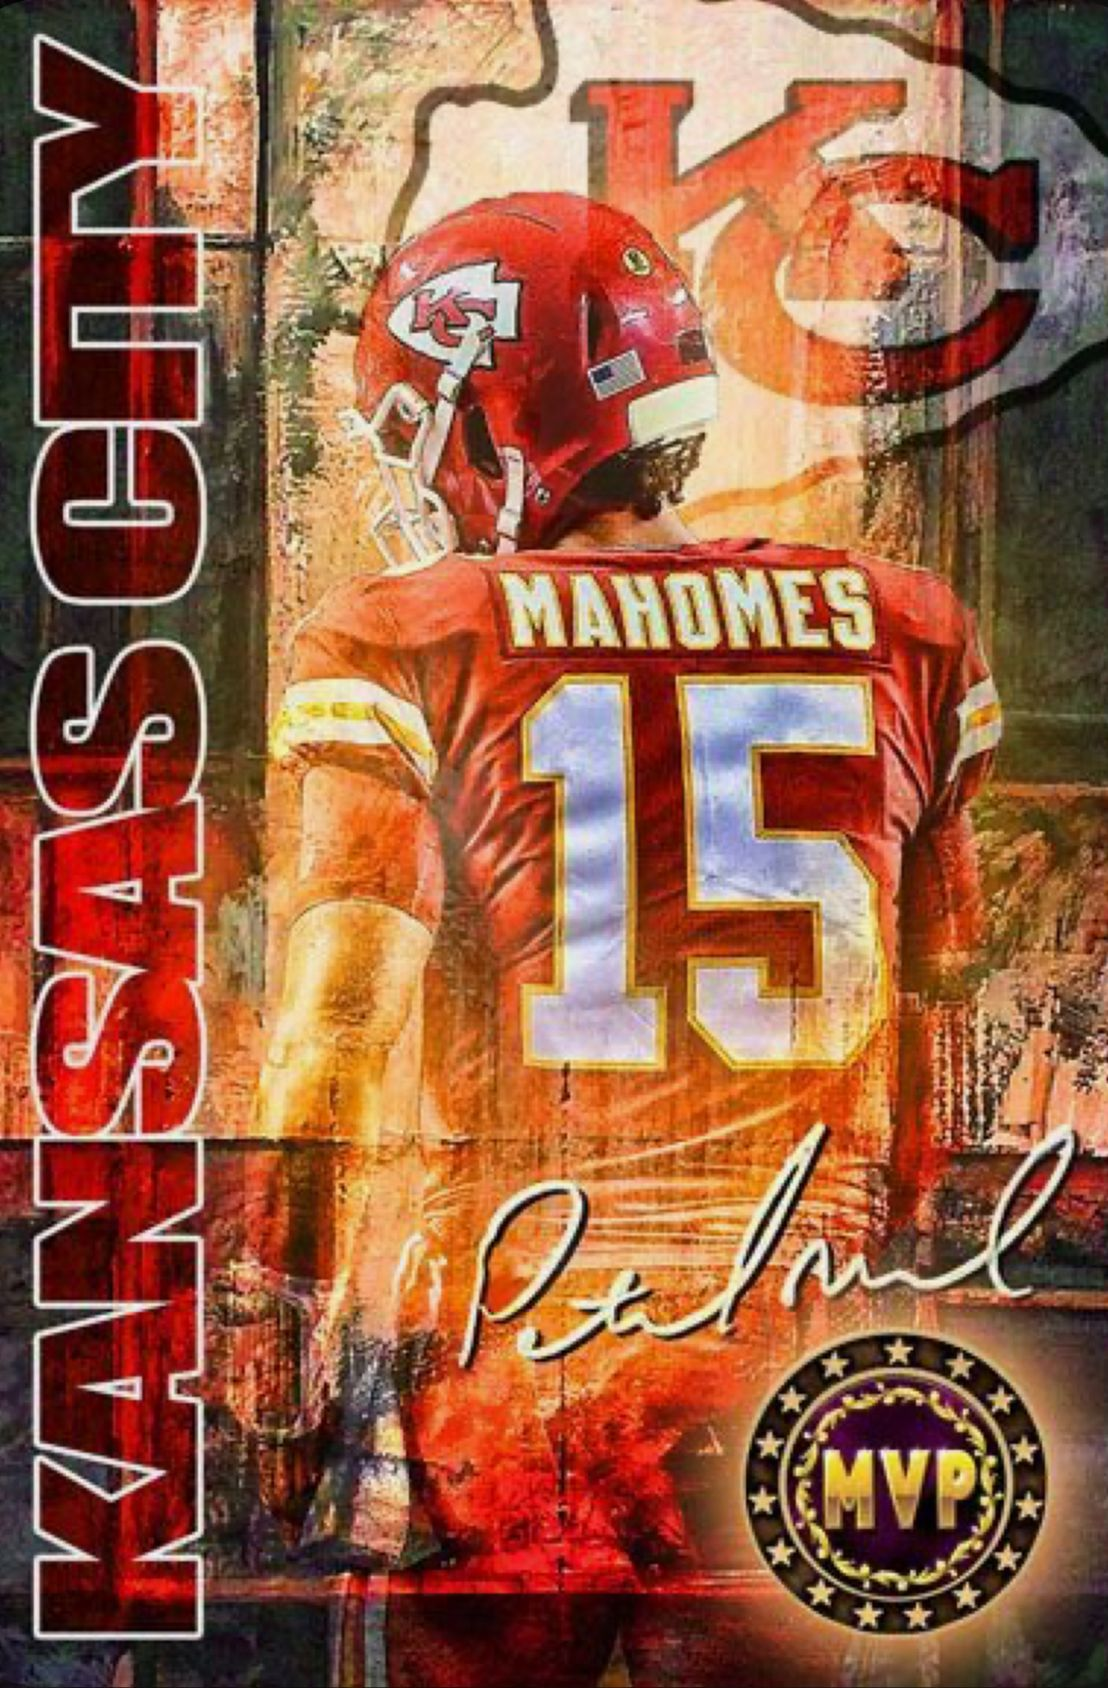 Pin By Brendon Stephens On Kansas City Chiefs Superbowl Champions In 2020 Kansas City Chiefs Football Kansas City Chiefs Logo Kc Chiefs Football